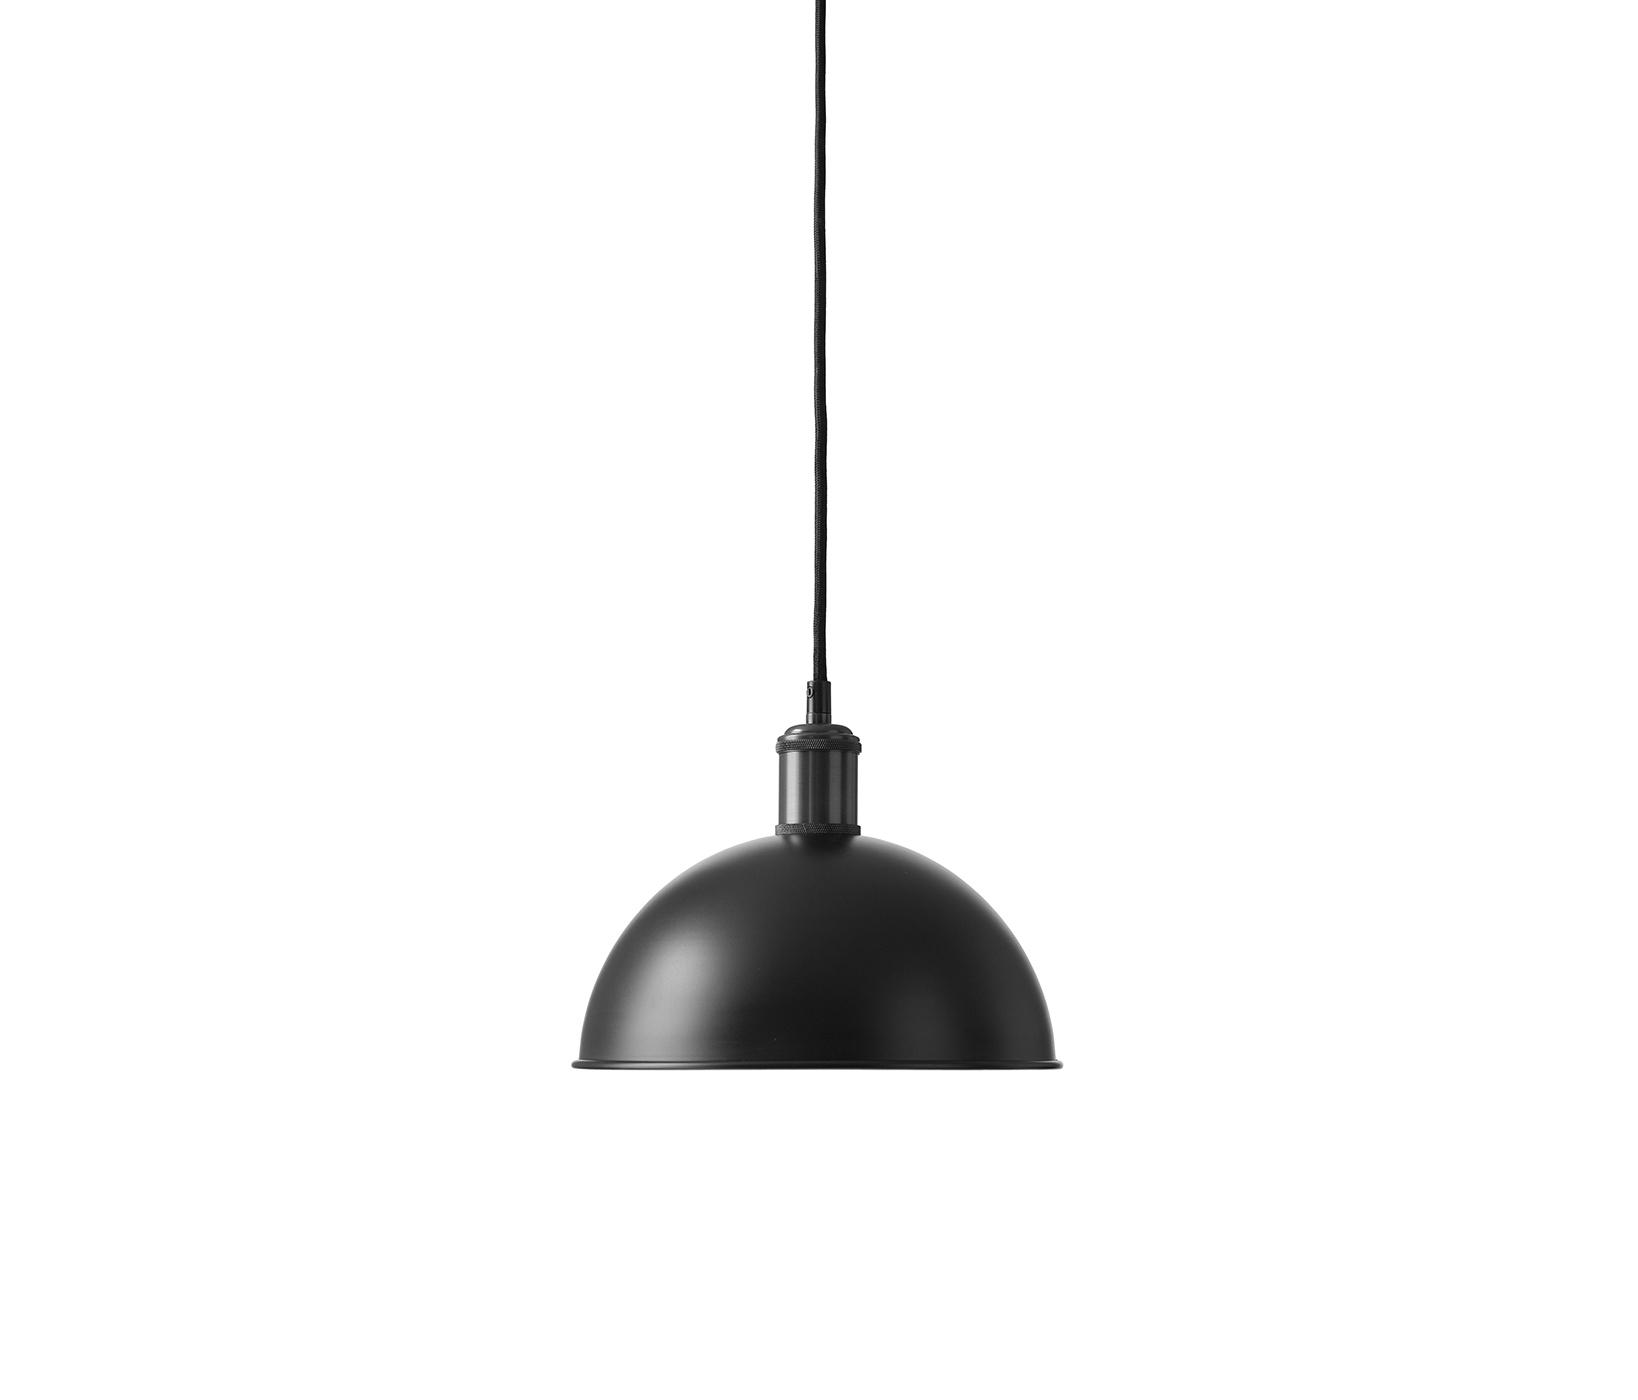 heal s dixon etch tom light pendant black